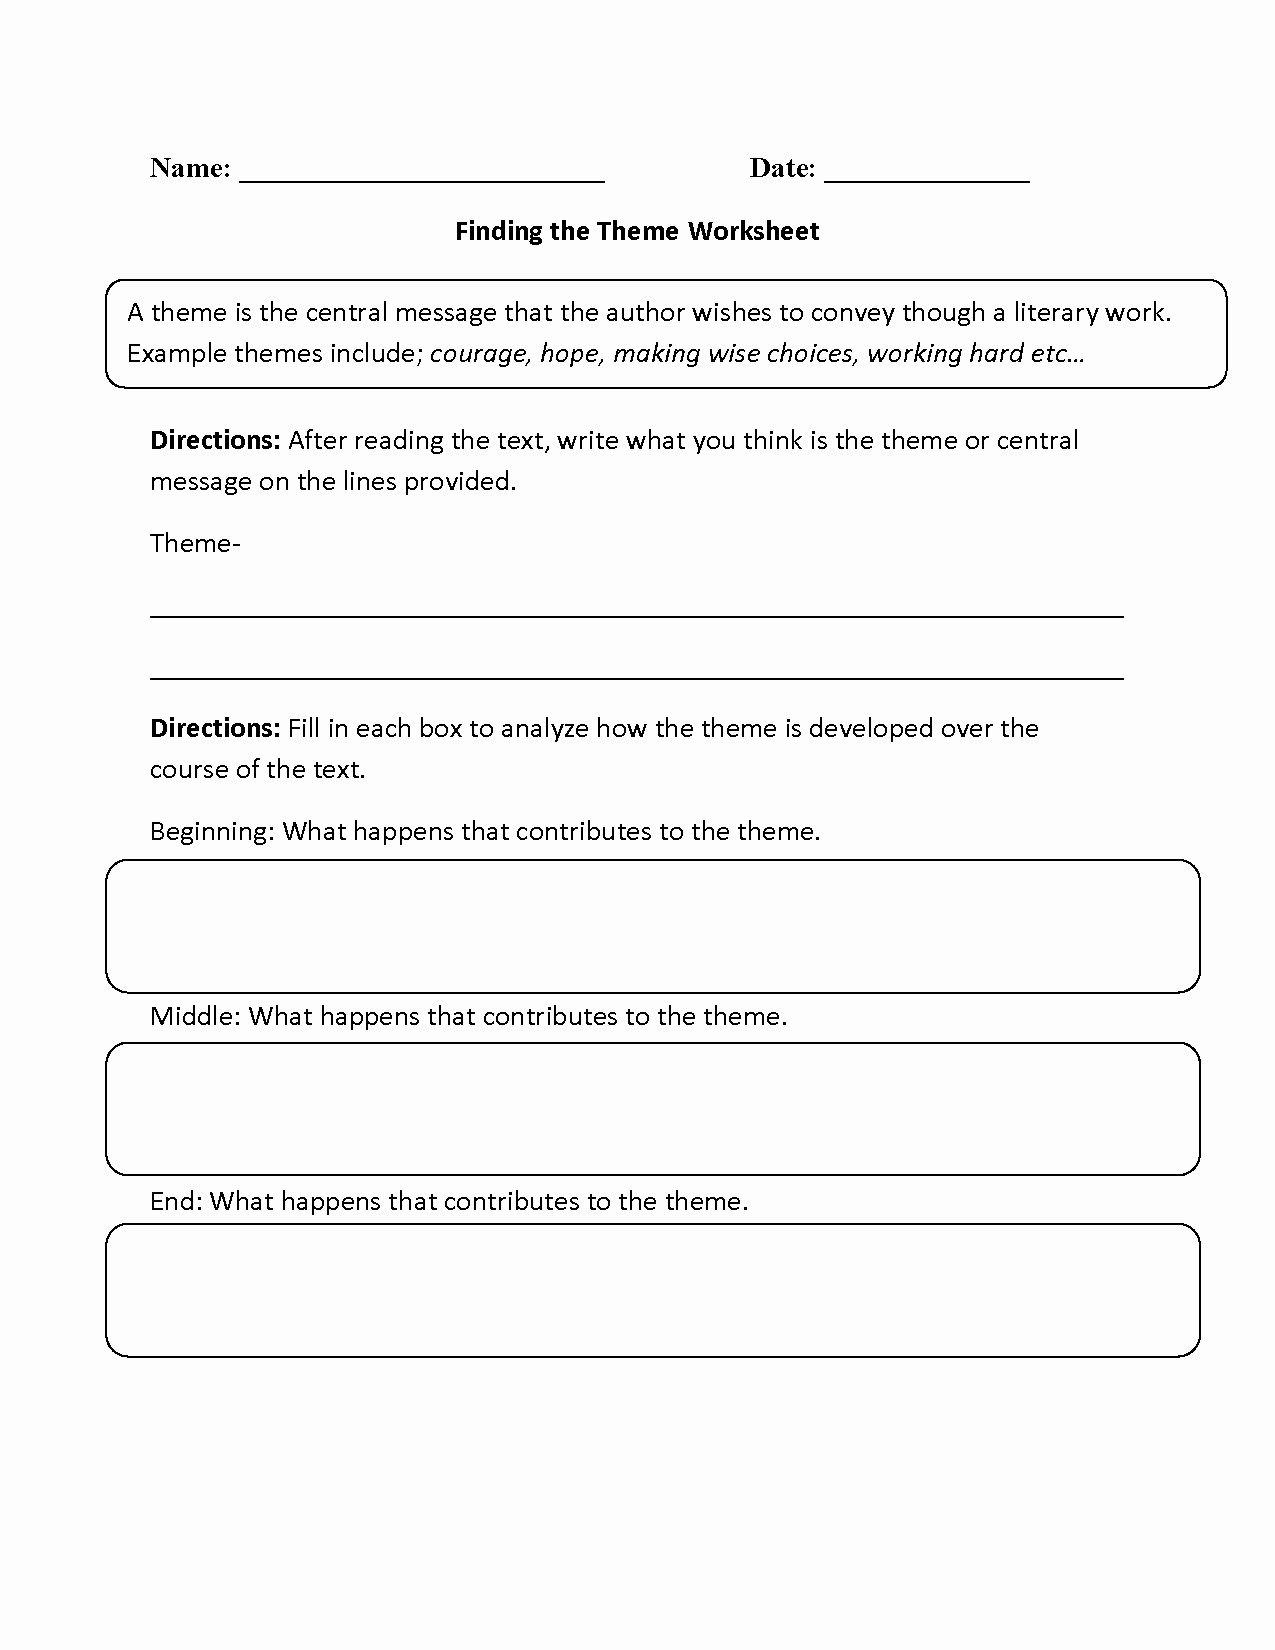 Theme Worksheets 5th Grade Awesome Finding the theme Worksheet Beginner